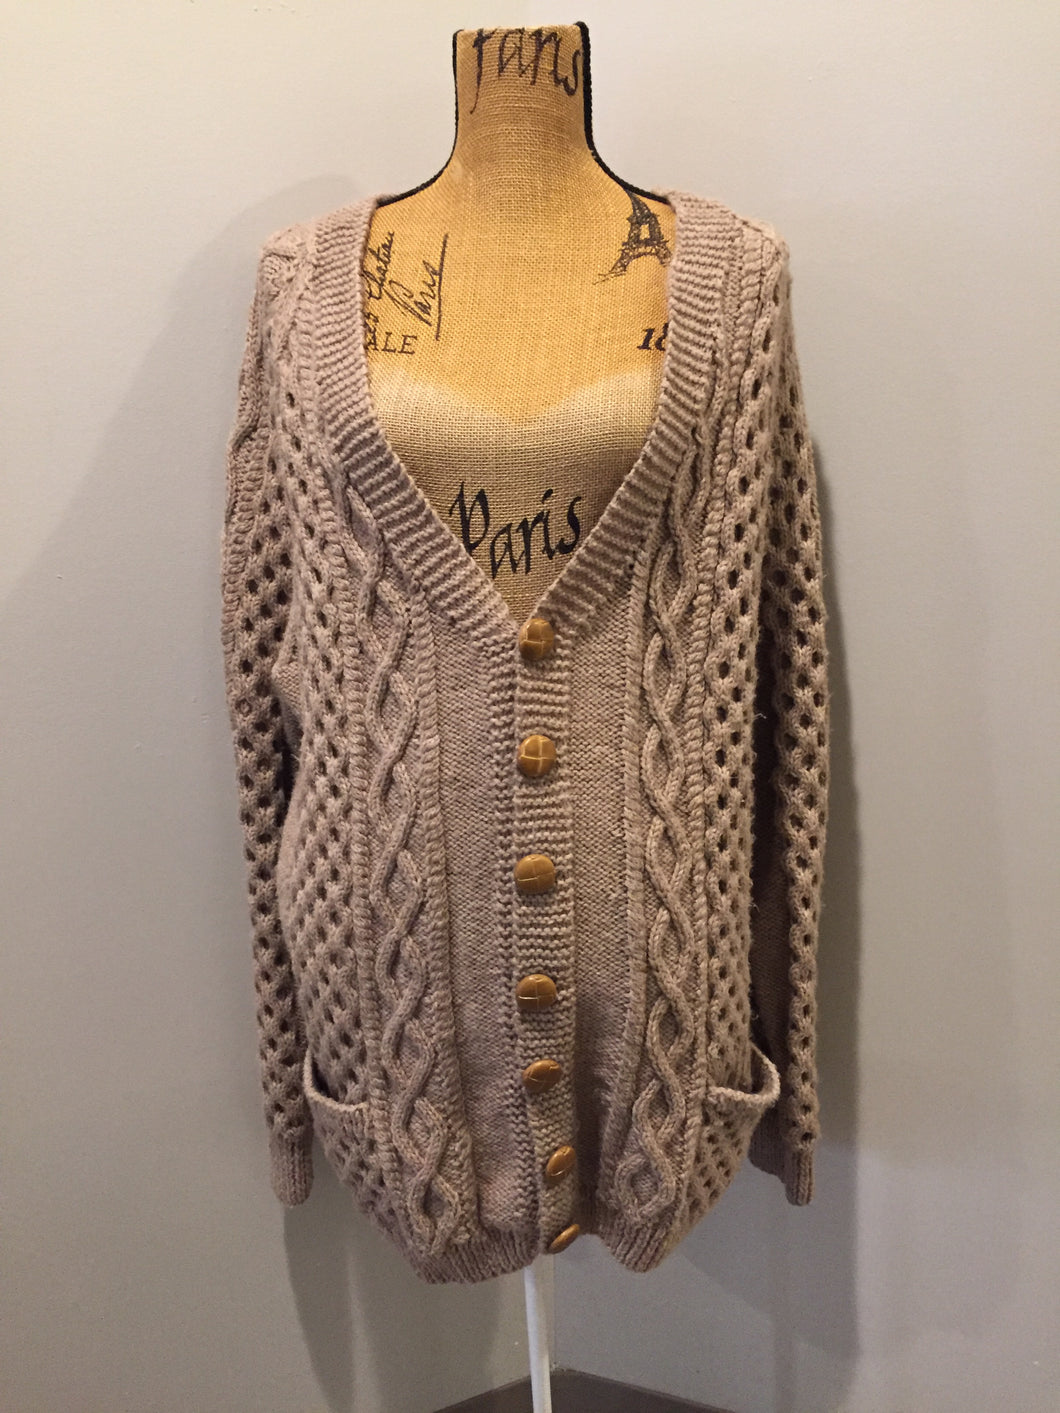 Kingspier Vintage - Hand knit honeycomb and cable stitch wool cardigan in beige with button closures and patch pockets. Size L/XL.